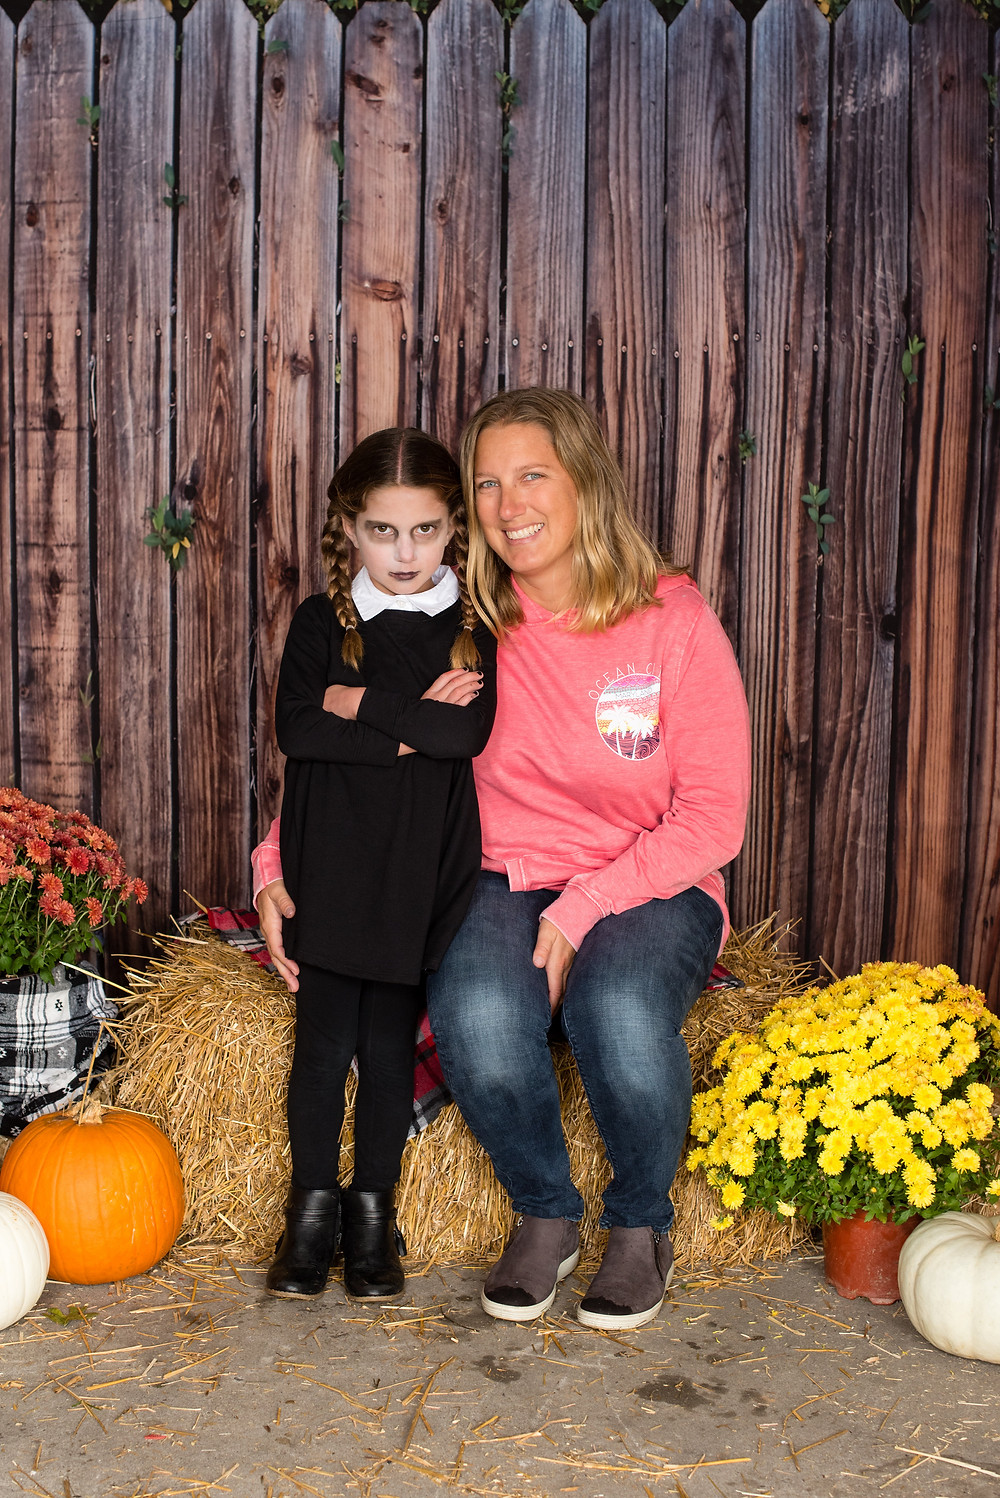 A mother and daughter sitting on hay bales with orange pumpkins and yellow flowers. Daughter is dressed as Adams Family character